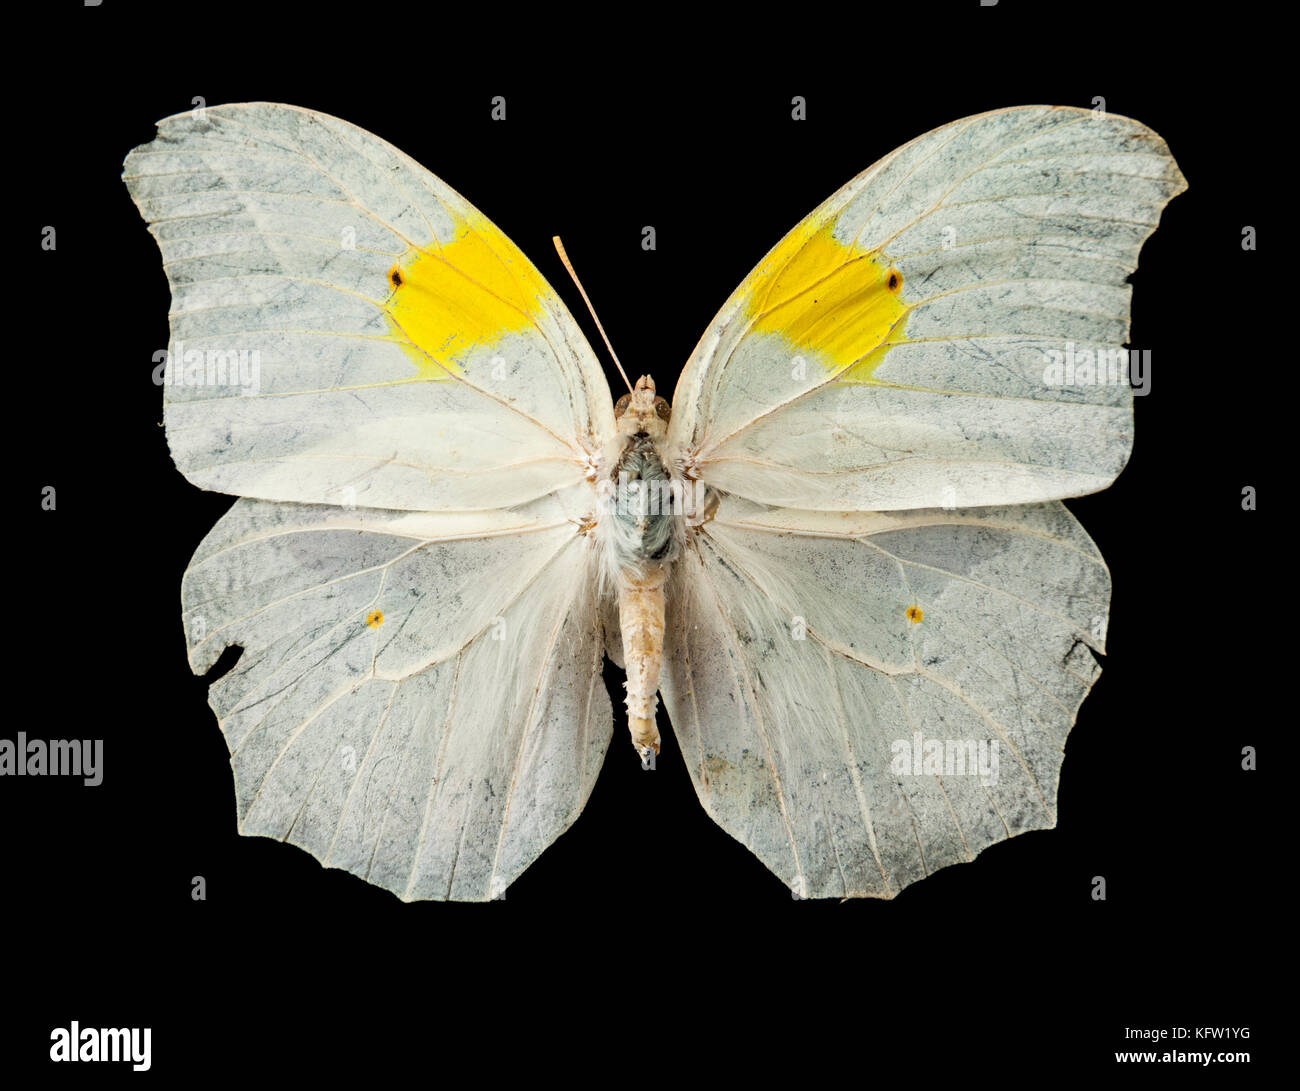 Anteos clorinde (White Angled-Sulphur) tropical butterfly from the Sapucay region of Paraguay, South America - Stock Image